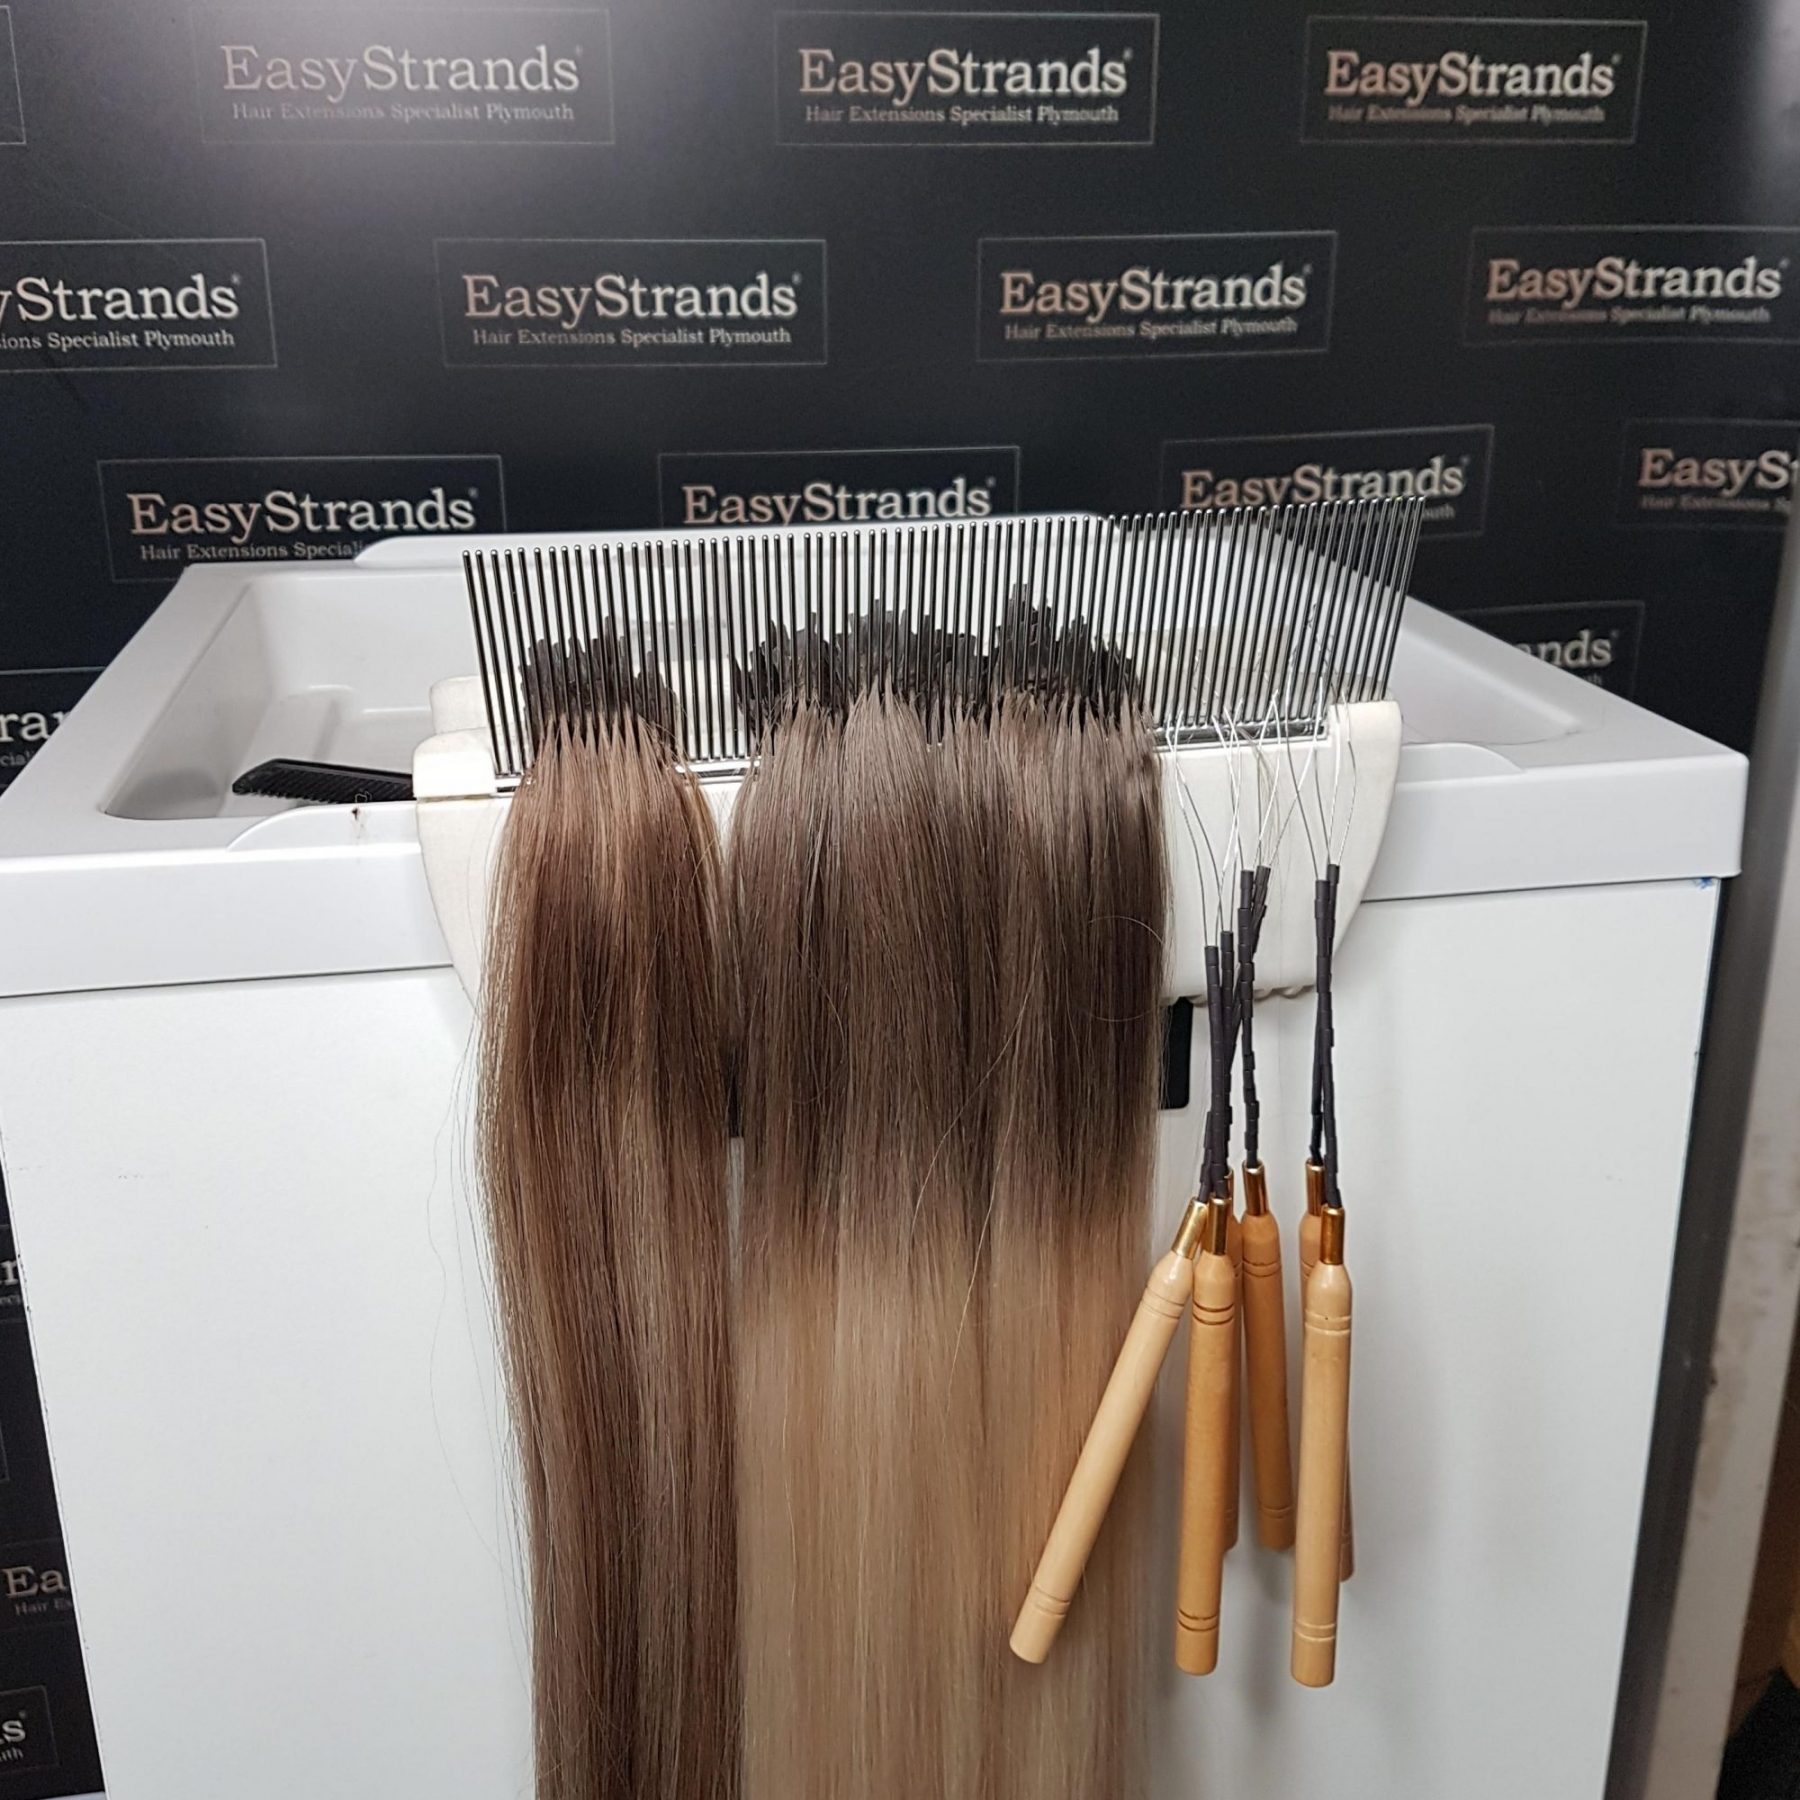 Hair Extensions Holder Easystrands Ltd Buy Online Today